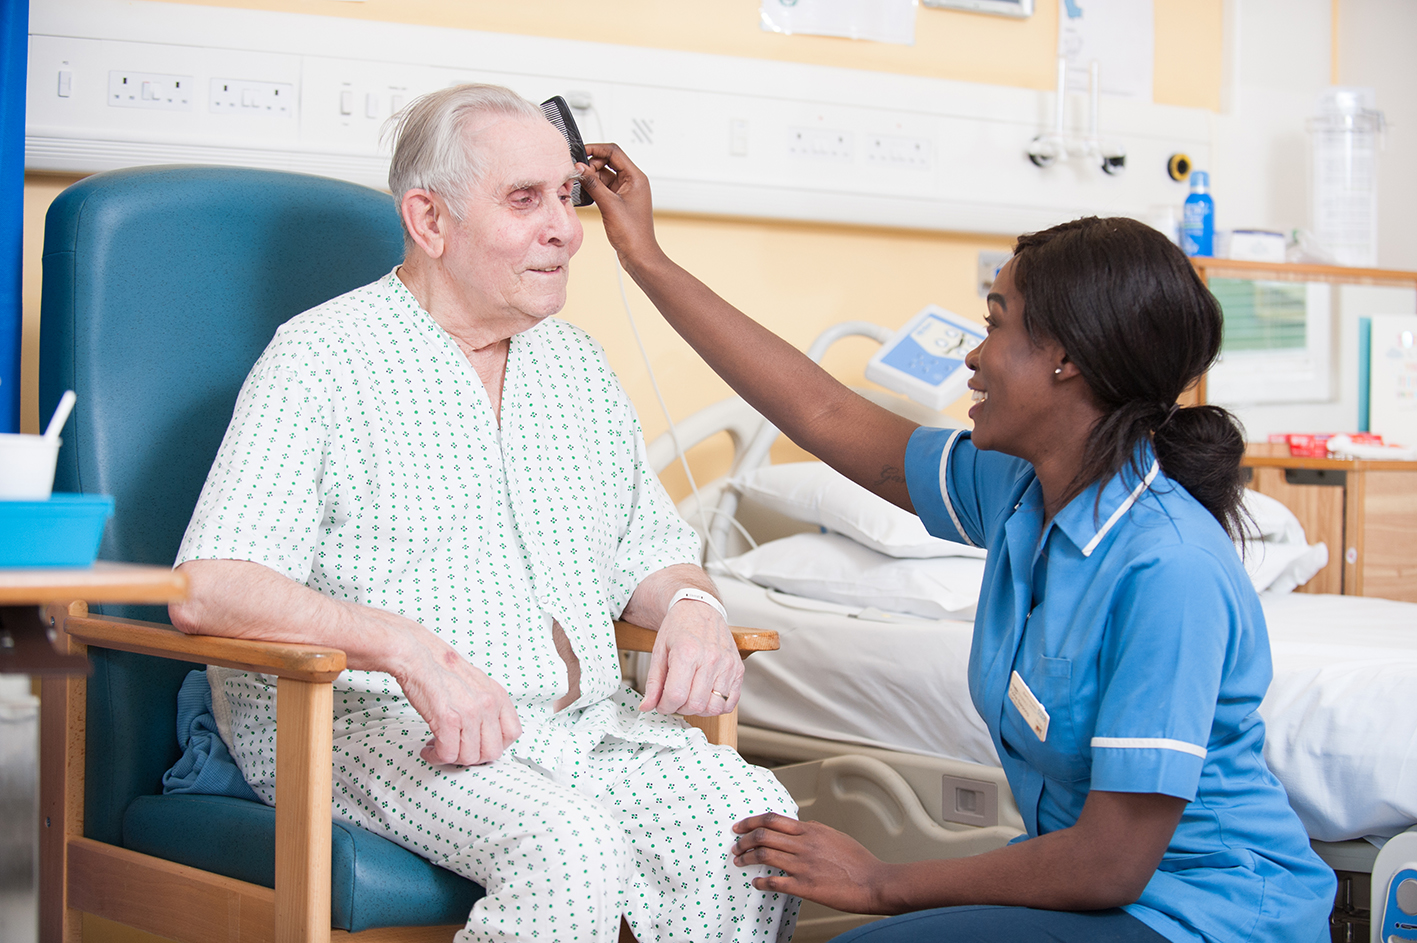 Portrait of Nurse caring for elderly patient smiling